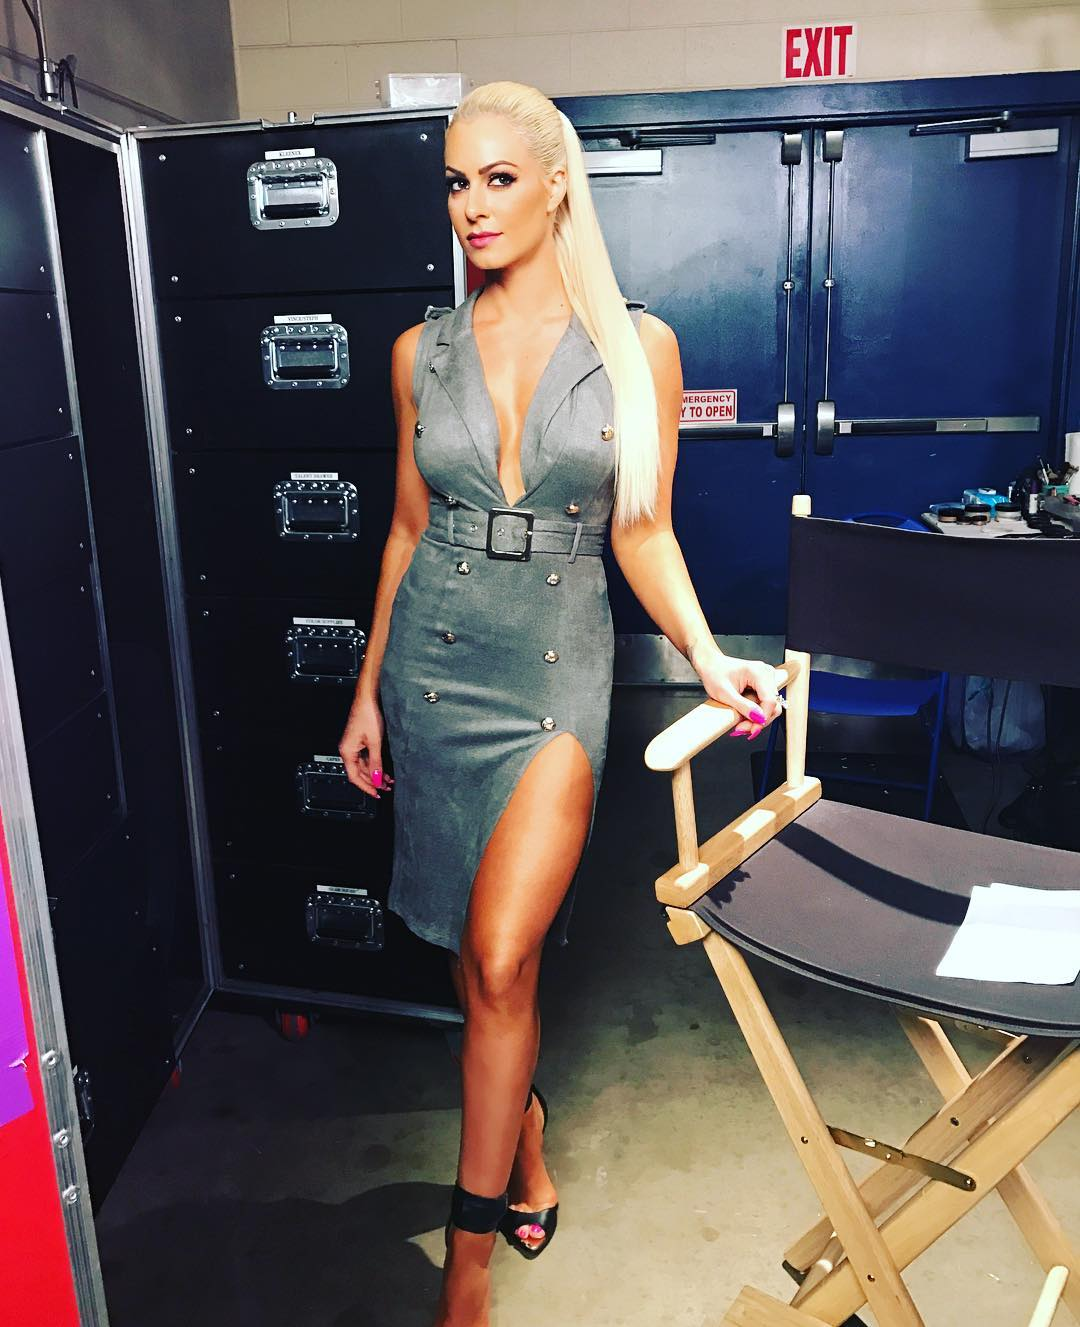 Maryse ouellet instagram